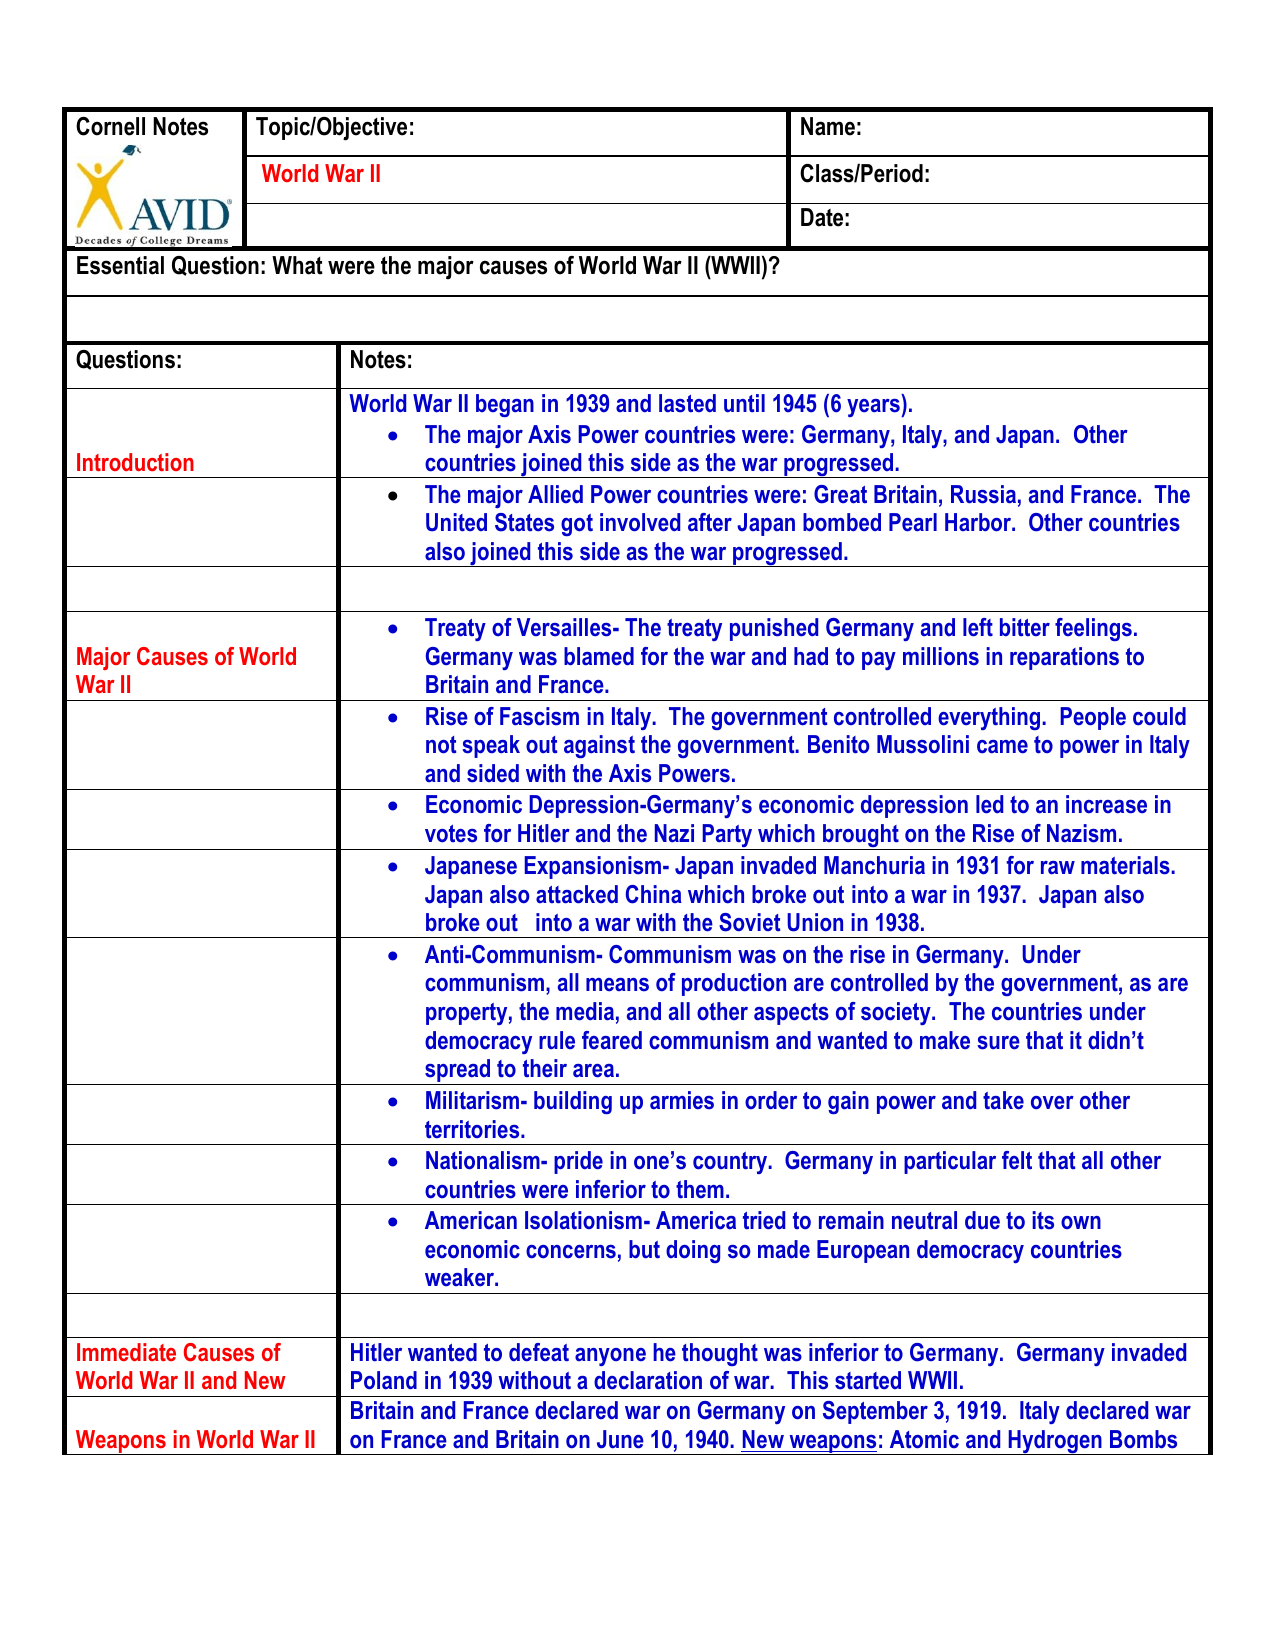 Cornell Notes Topic Objective Name World War Ii Class Period